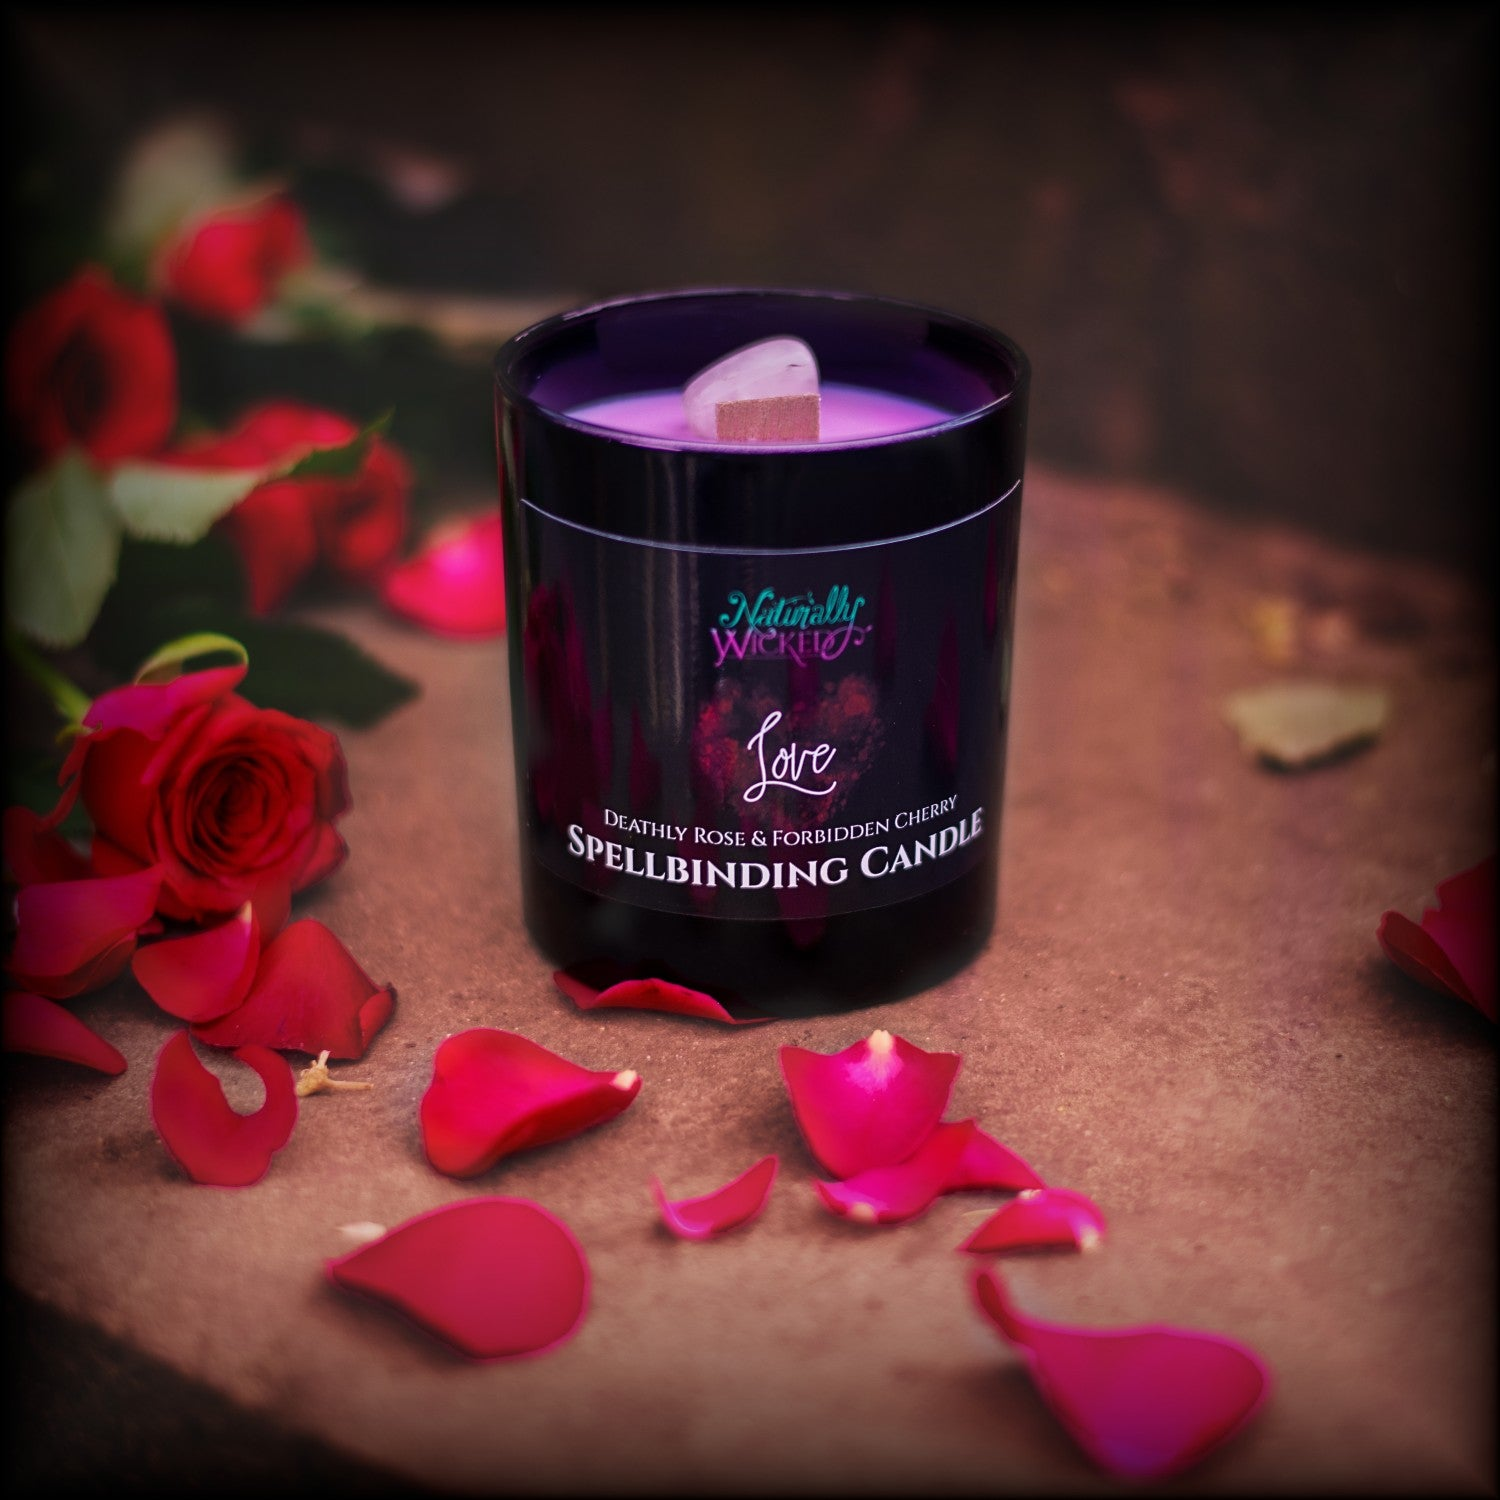 Naturally Wicked Spellbinding Love Candle Entombed With Bright Pink Quartz Crystal Sits On Romantic Steps Drizzled In Red Rose Petals